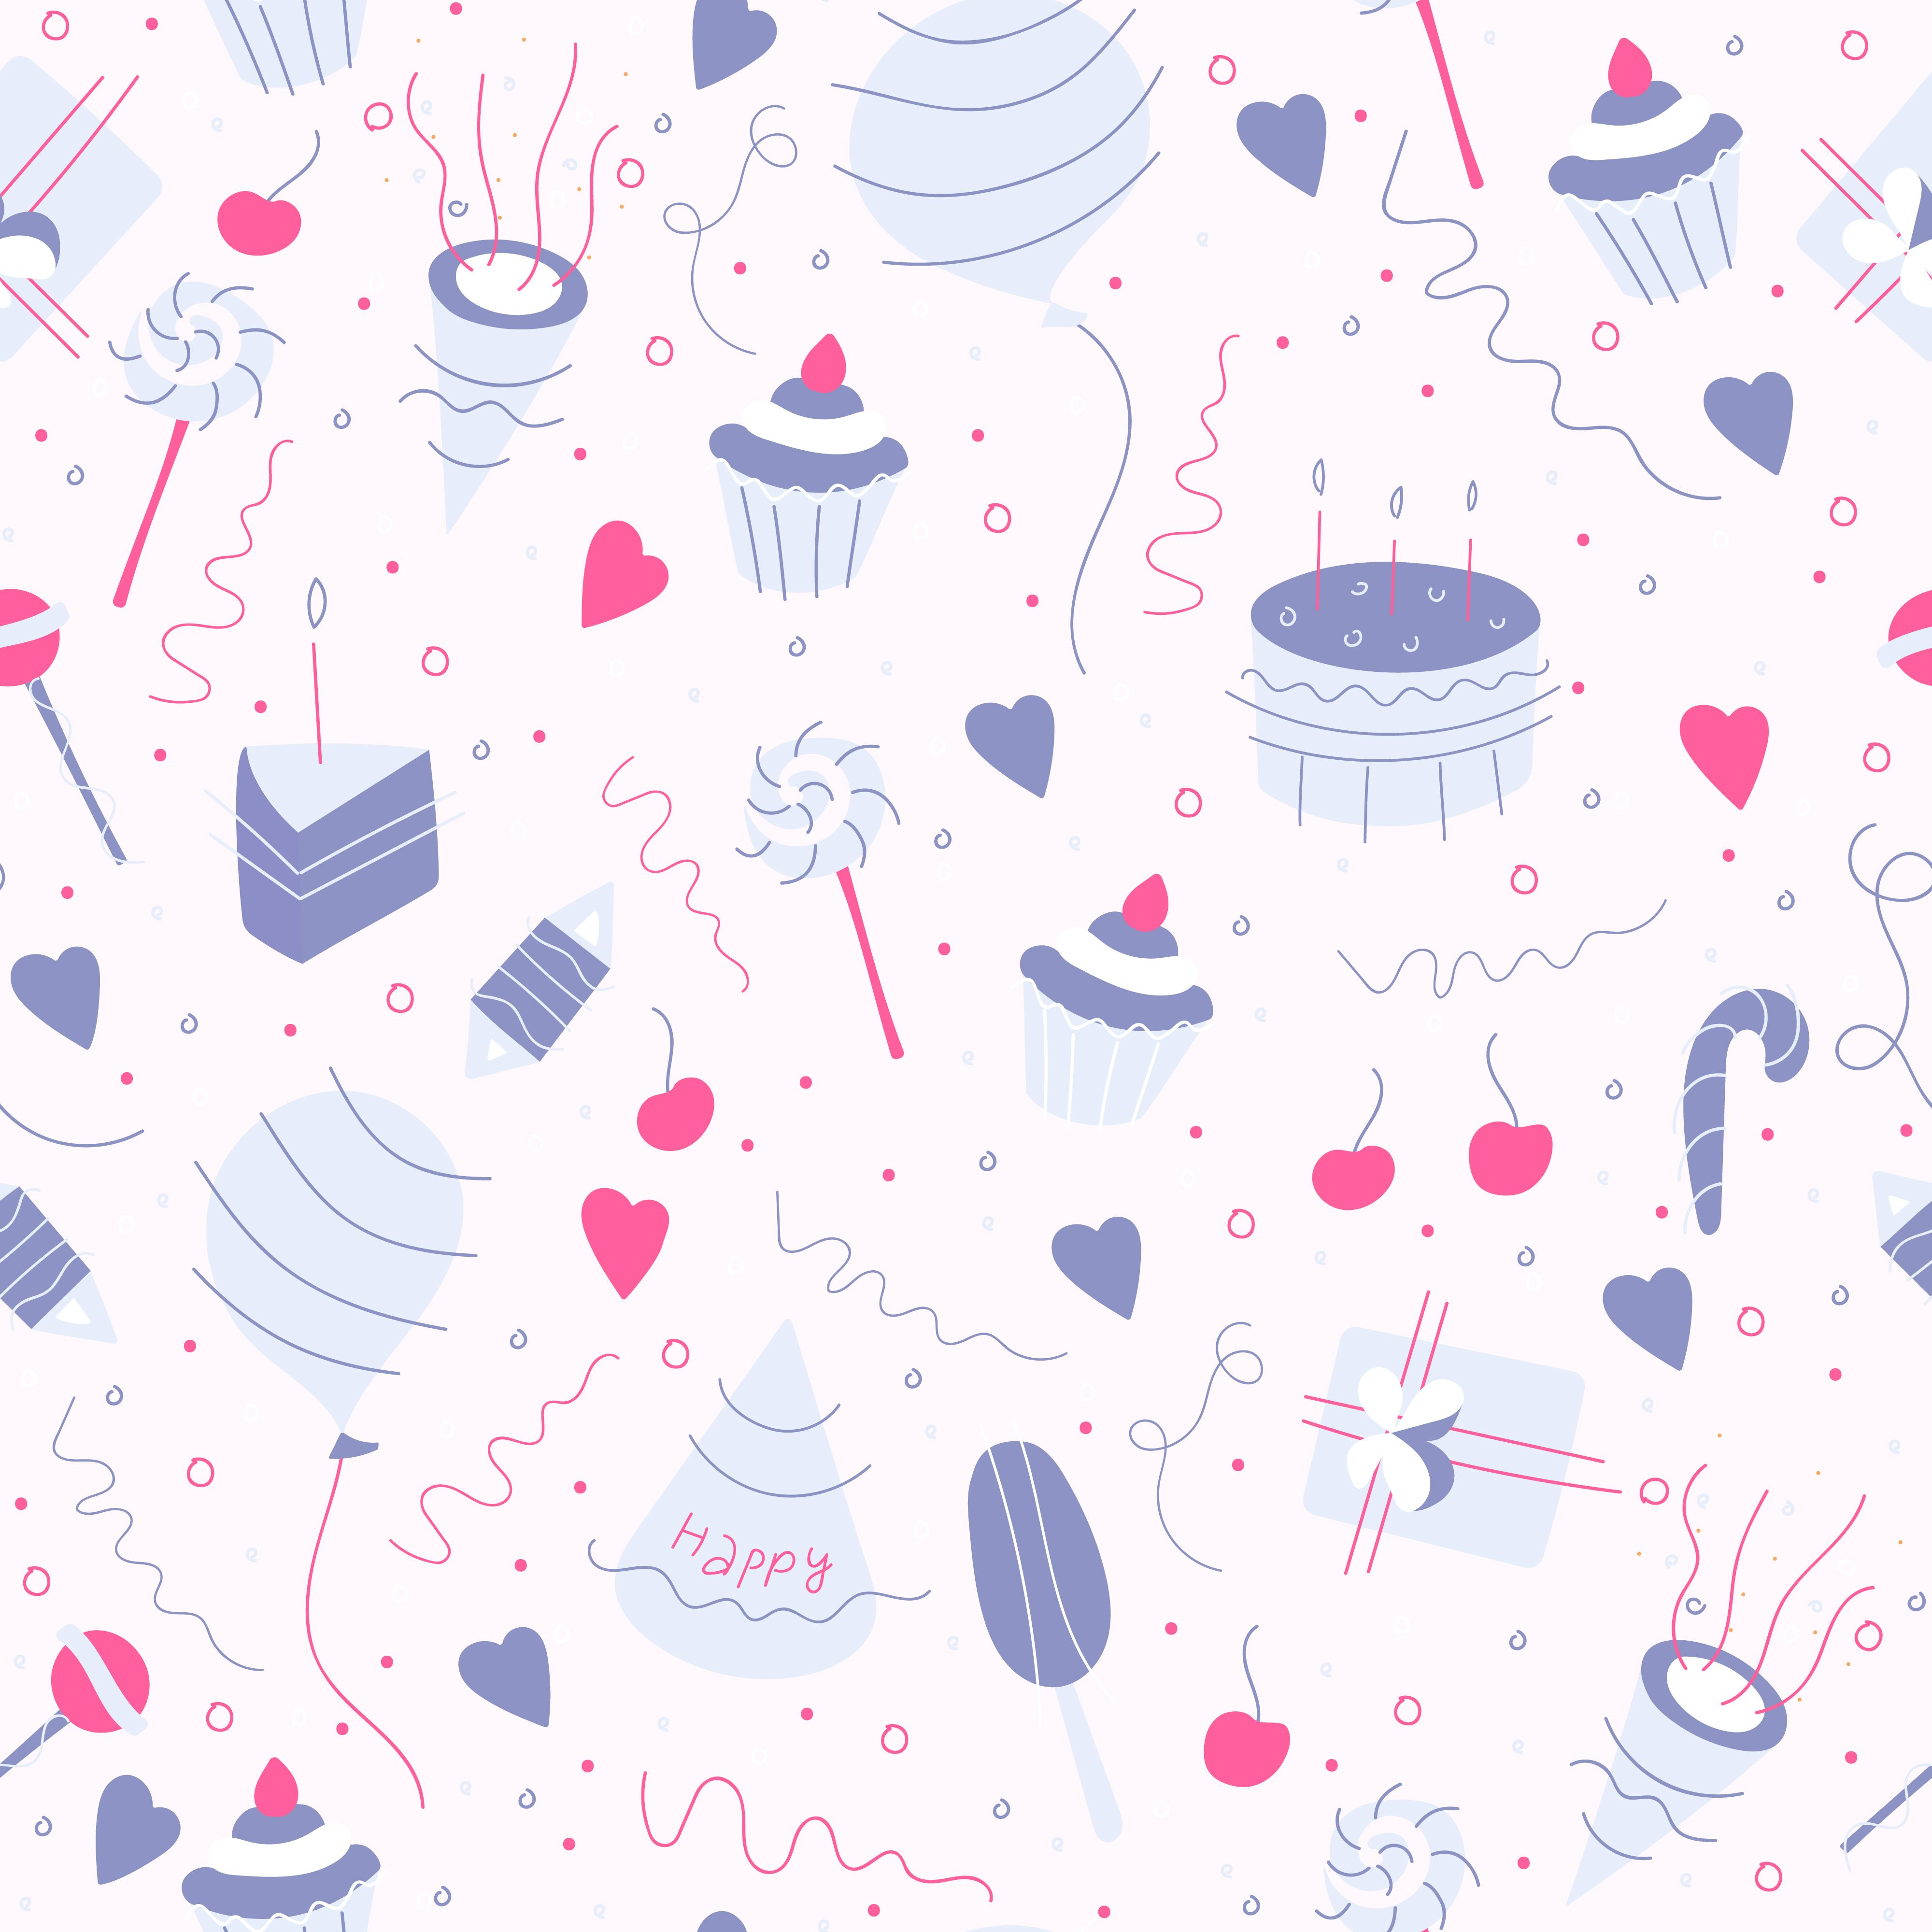 Festive Seamless Pattern With Hand Drawn Birthday Party Design